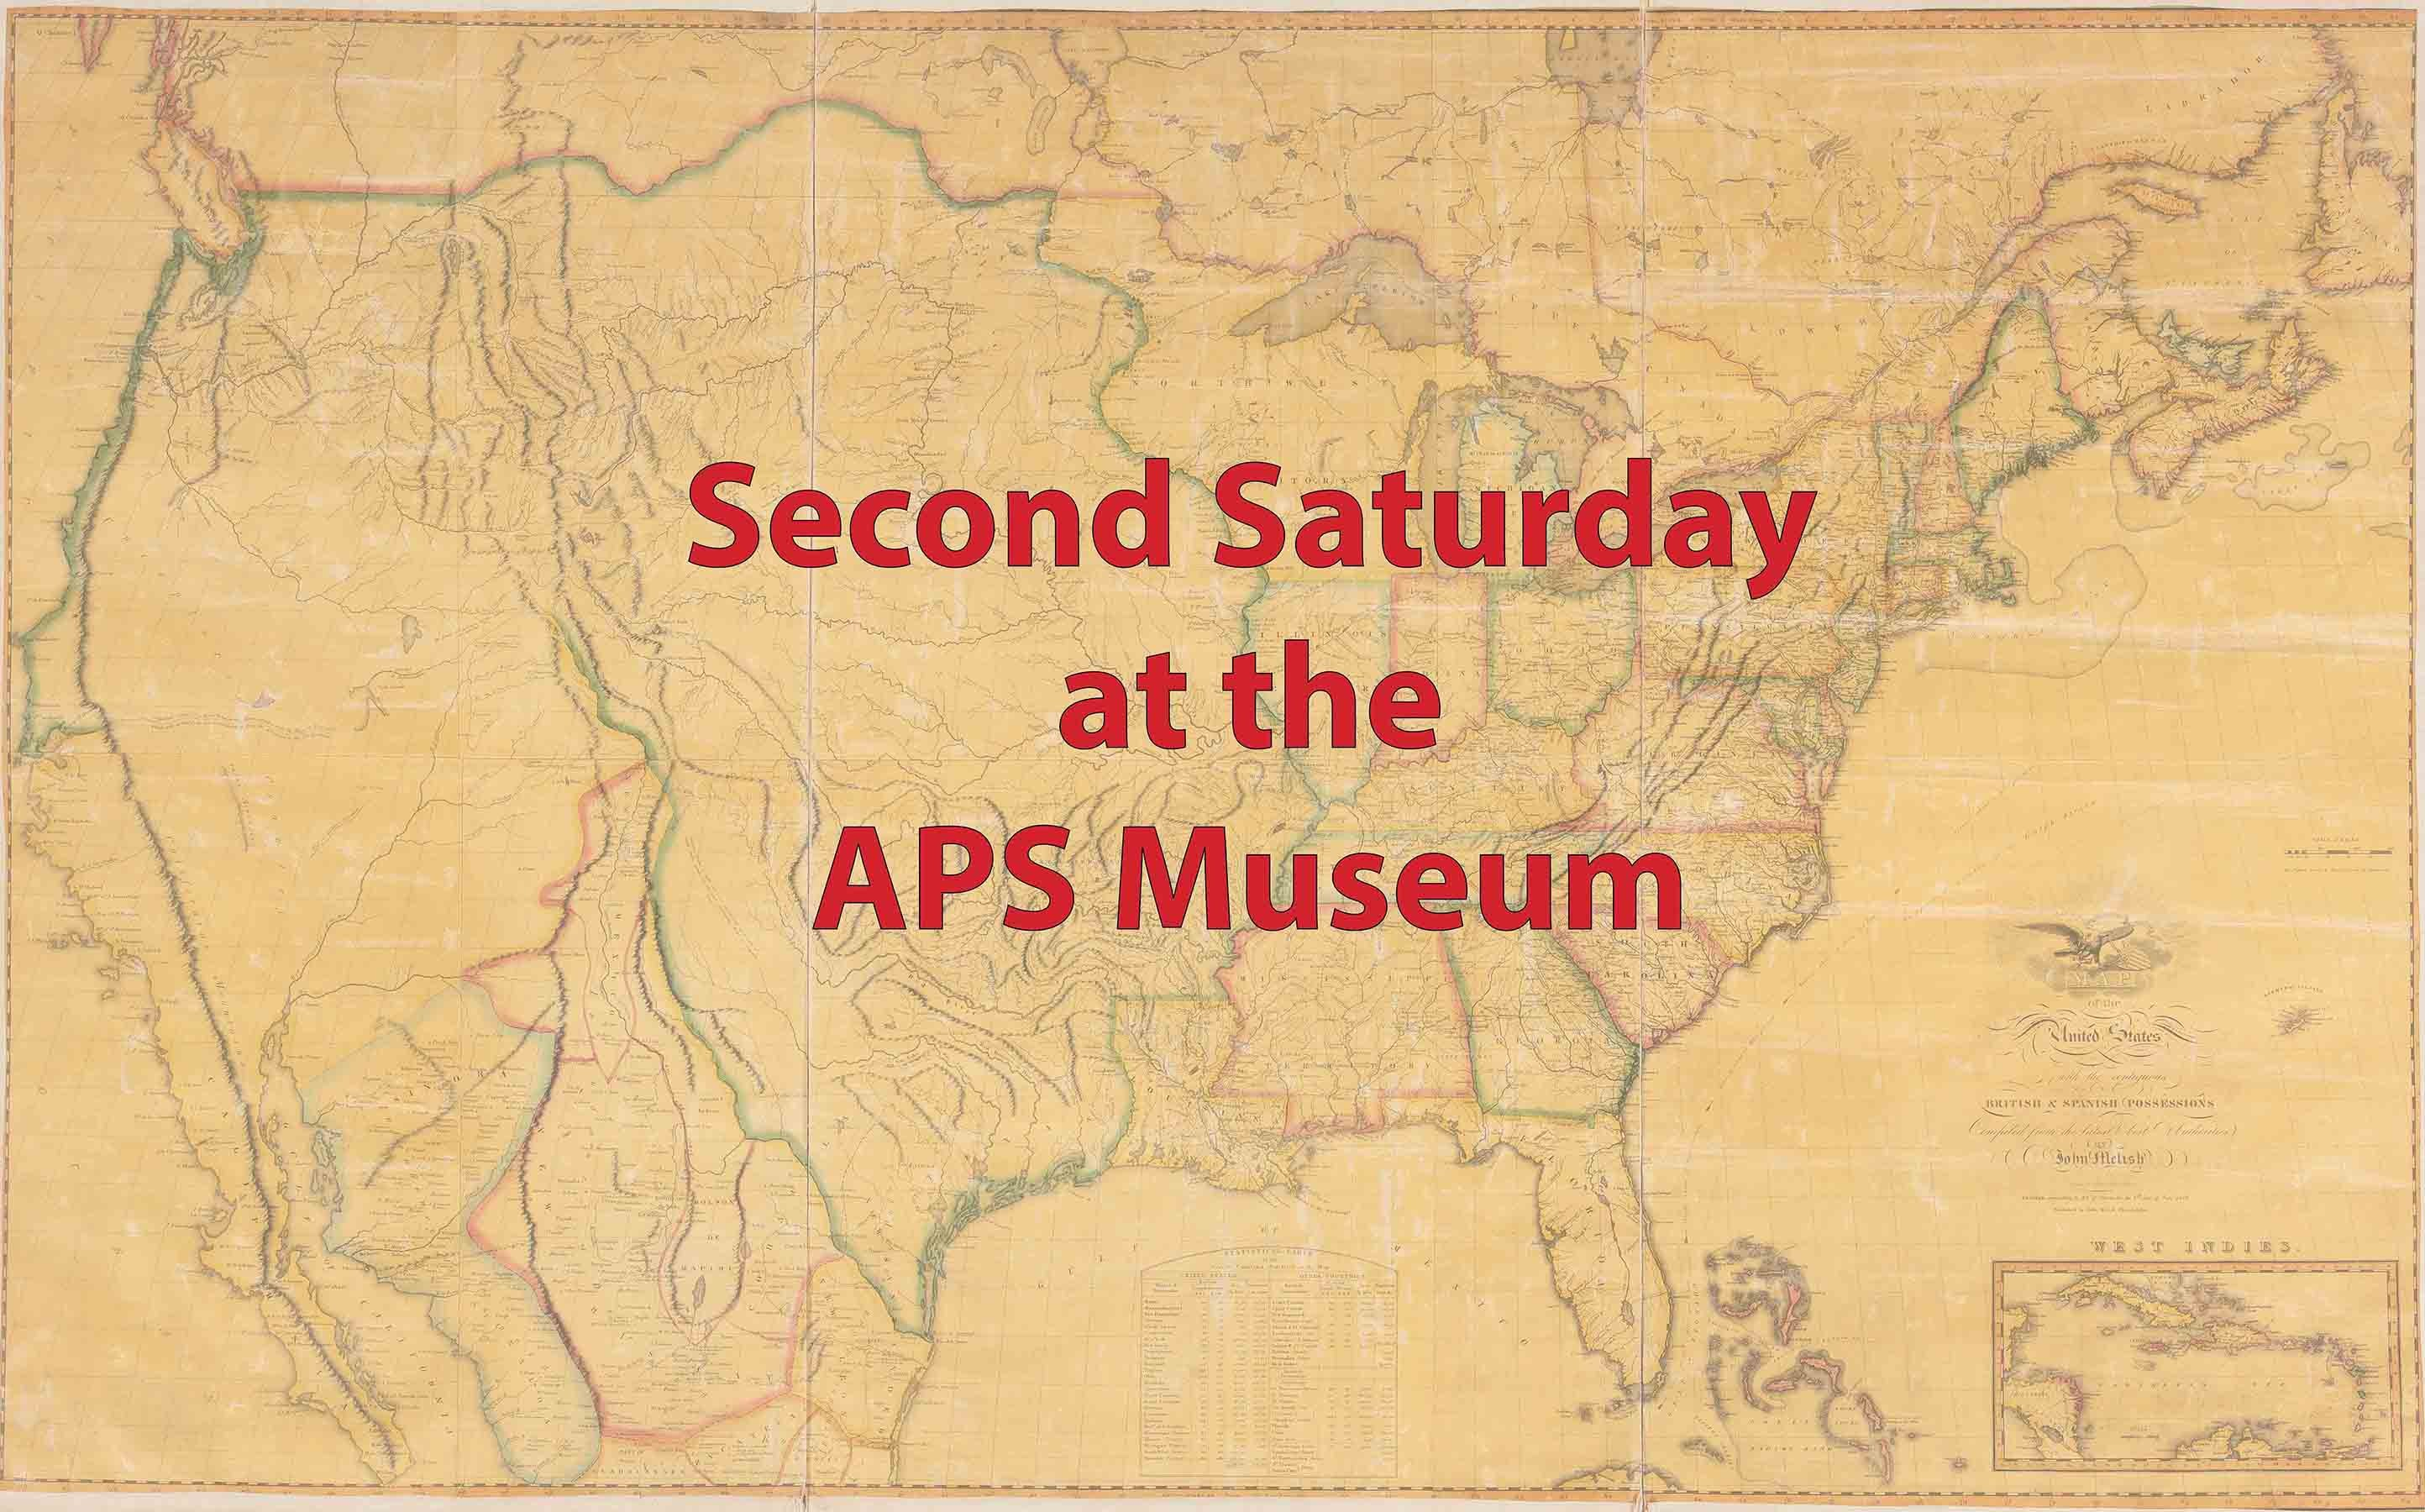 Second Saturday at the APS Museum